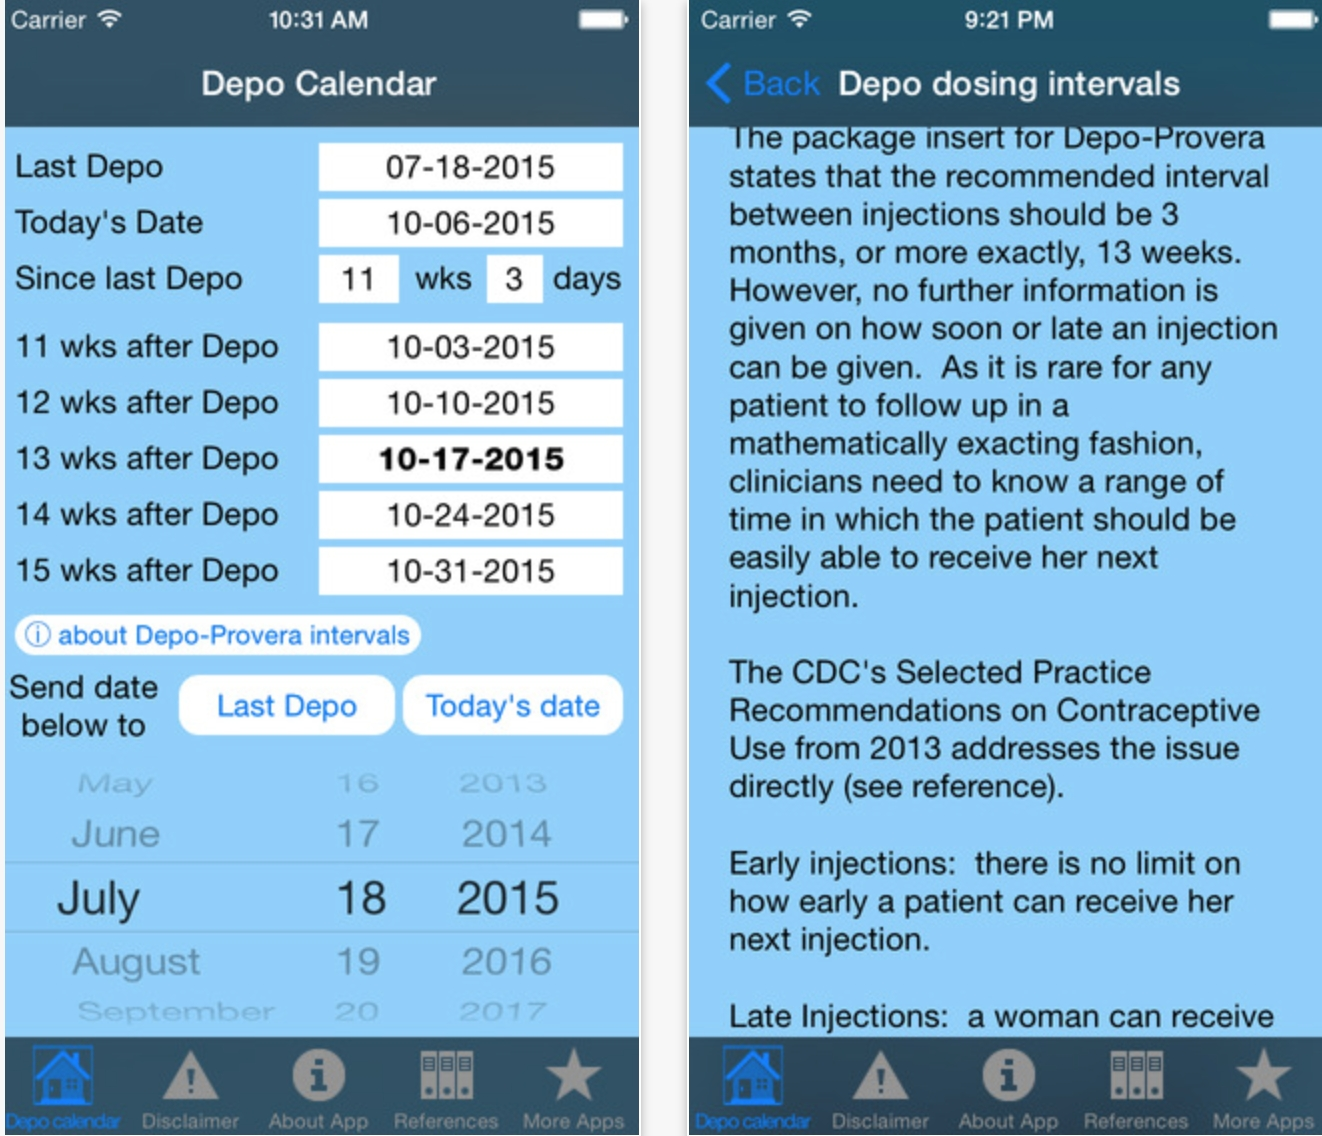 Depo Calendar App Could Significantly Improve Contraception  Depo Provera Calculator